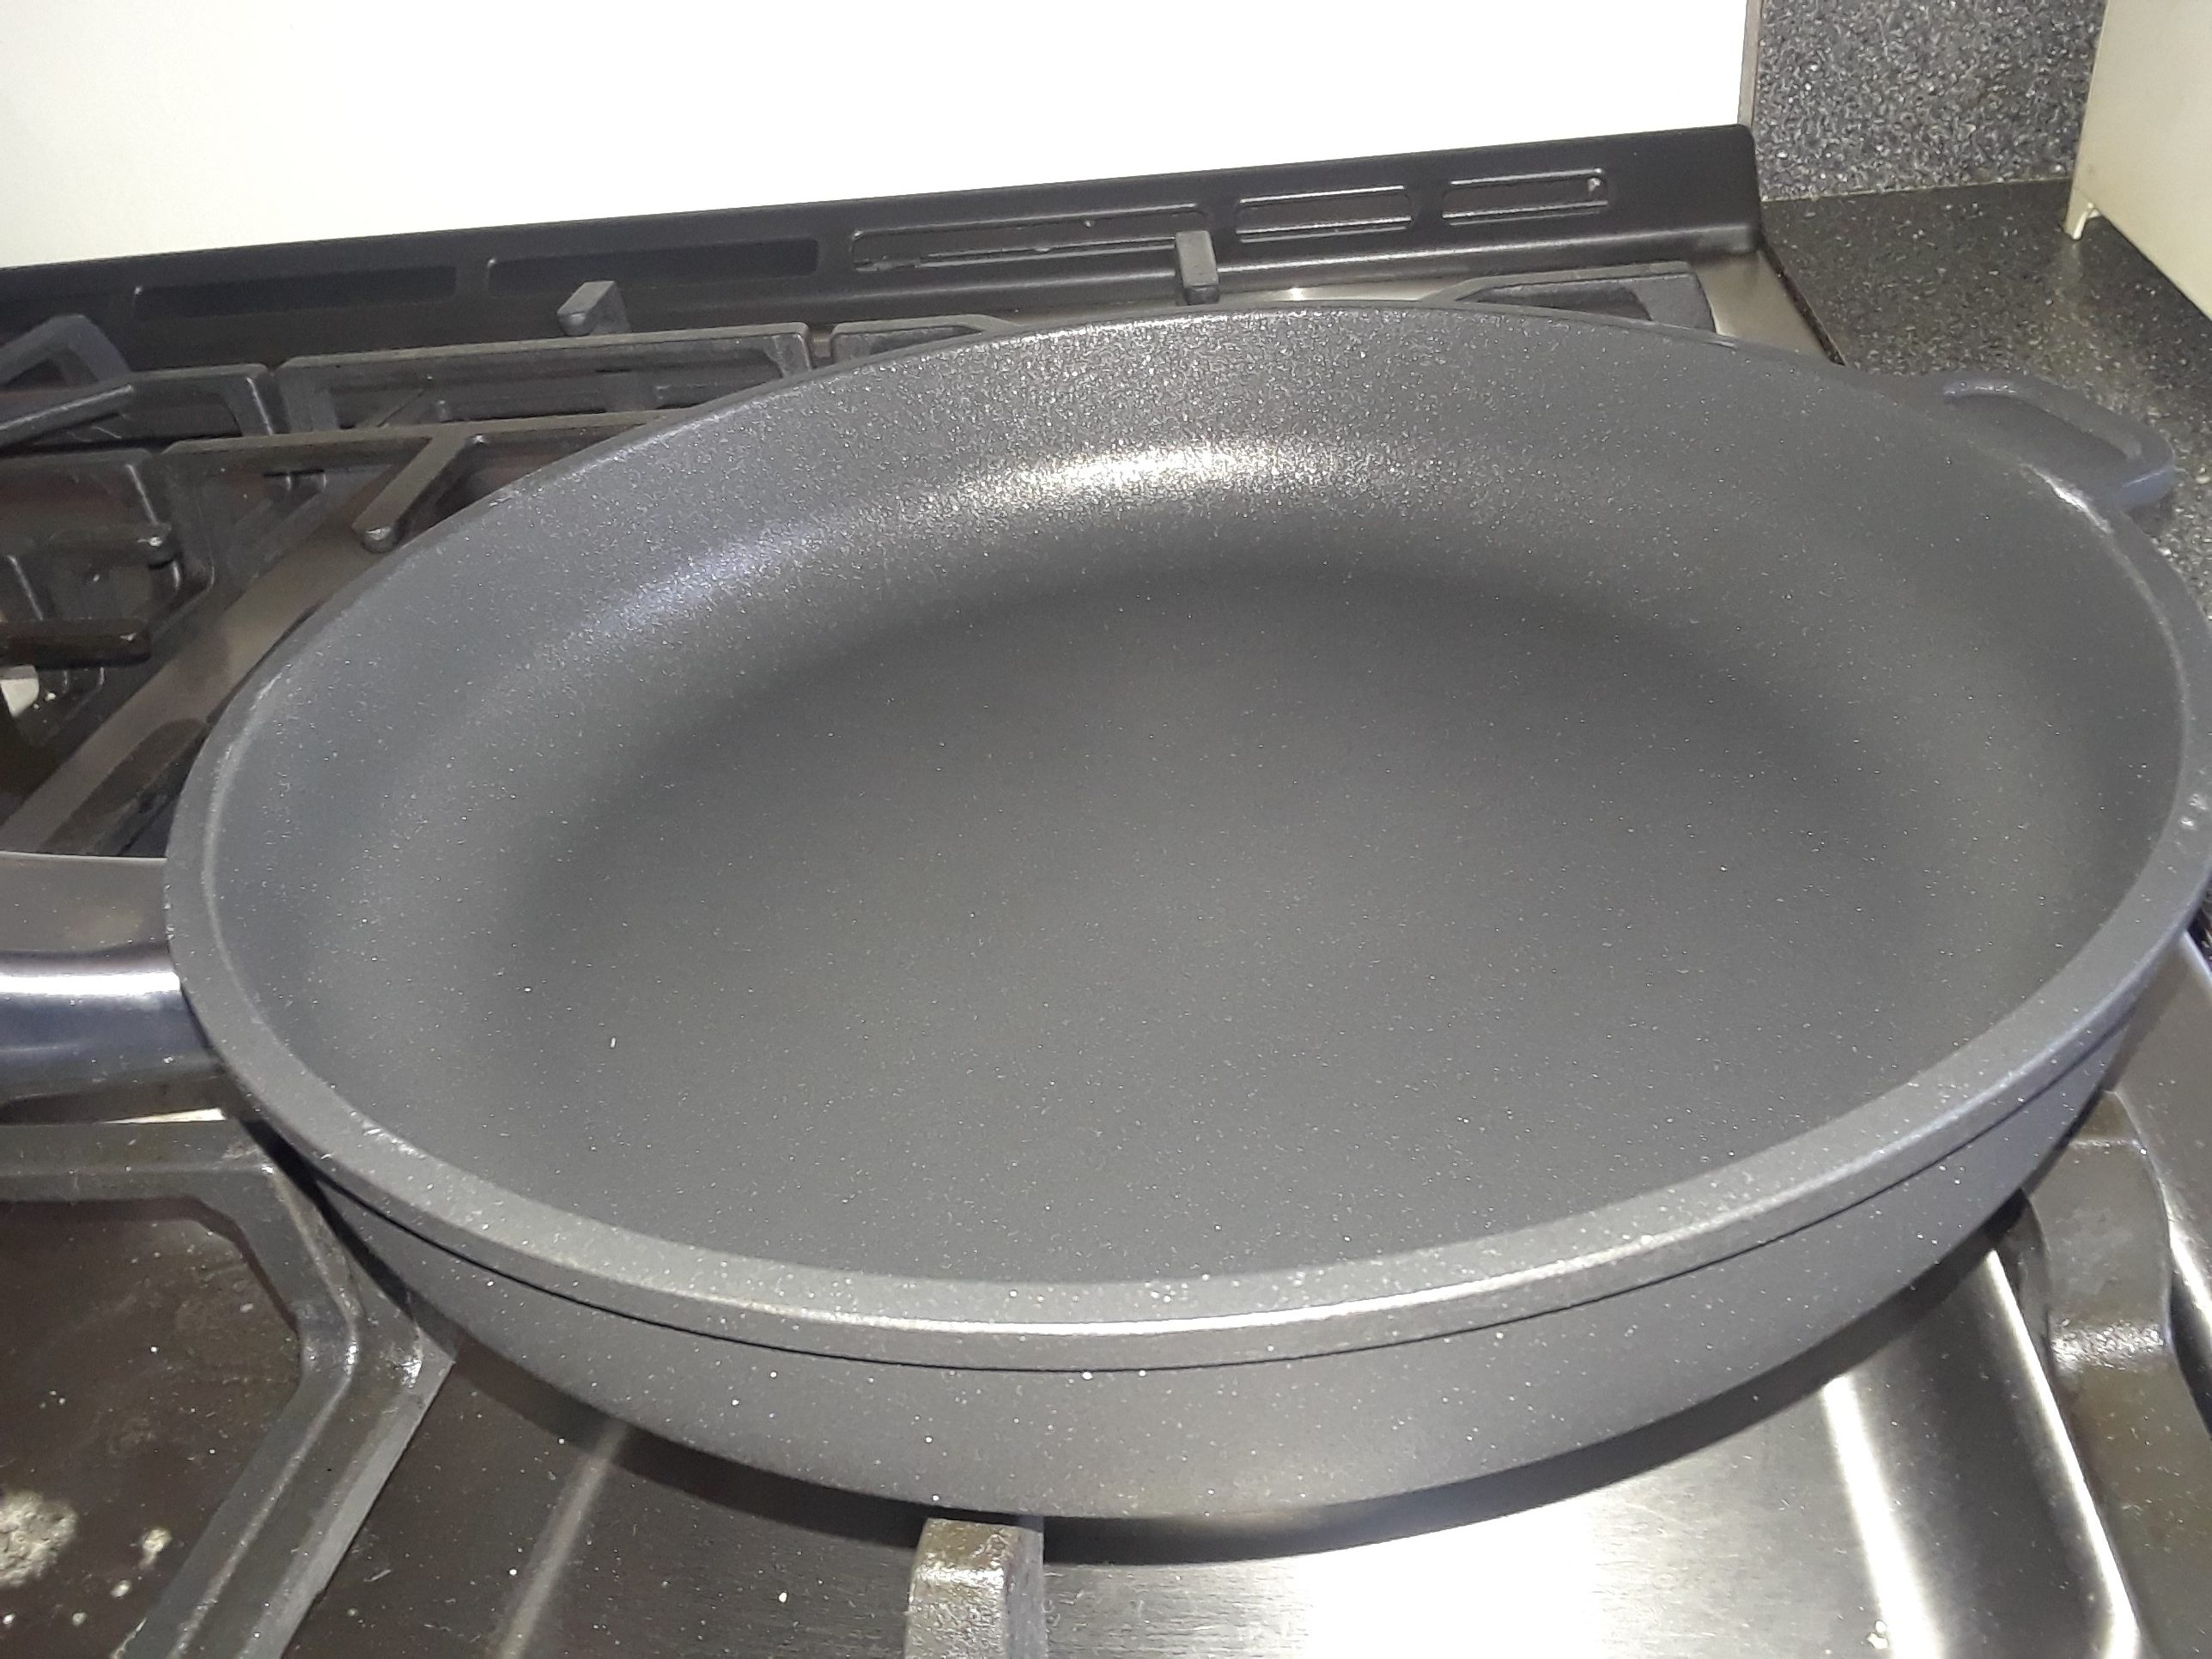 """Ozeri Professional Series 10"""" Ceramic Earth Fry Pan, Hand Cast and Made in Germany #Review HGG18 @ozeriproducts"""